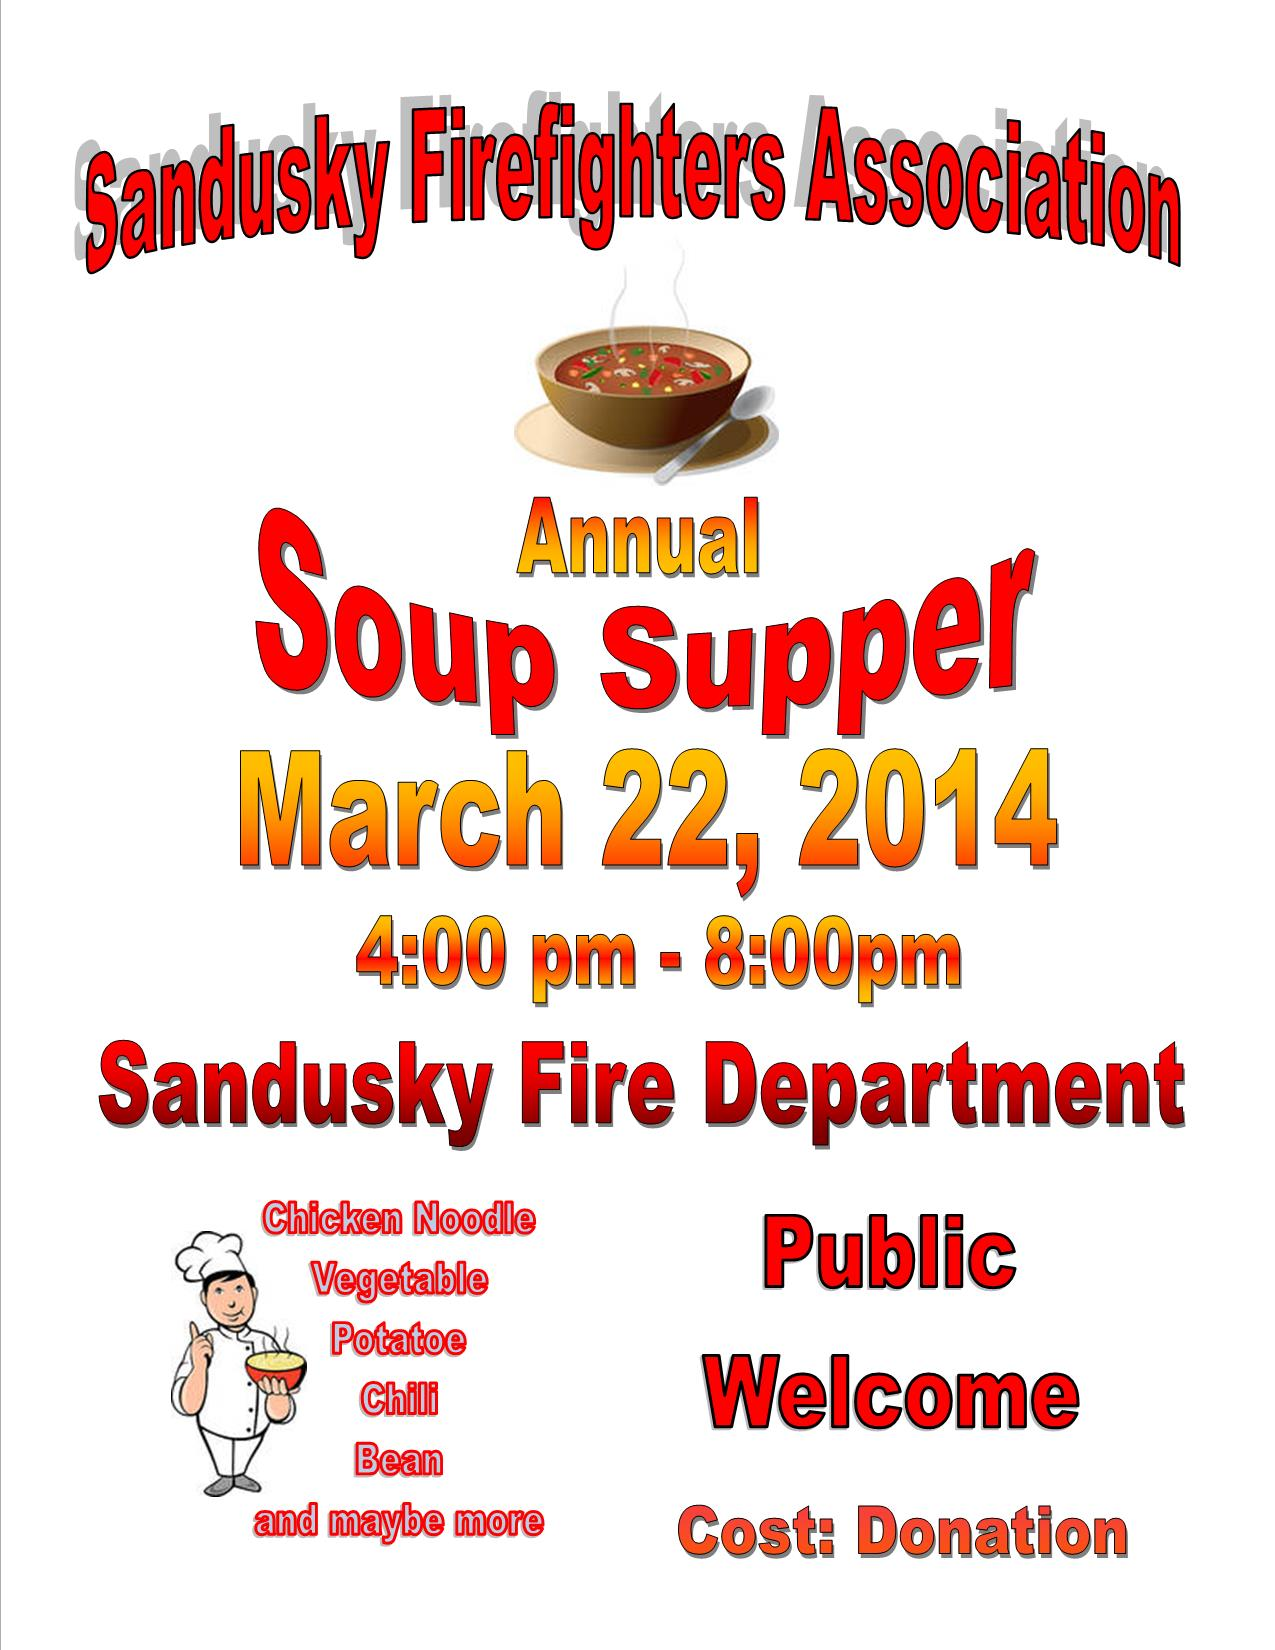 soup_supper_2014